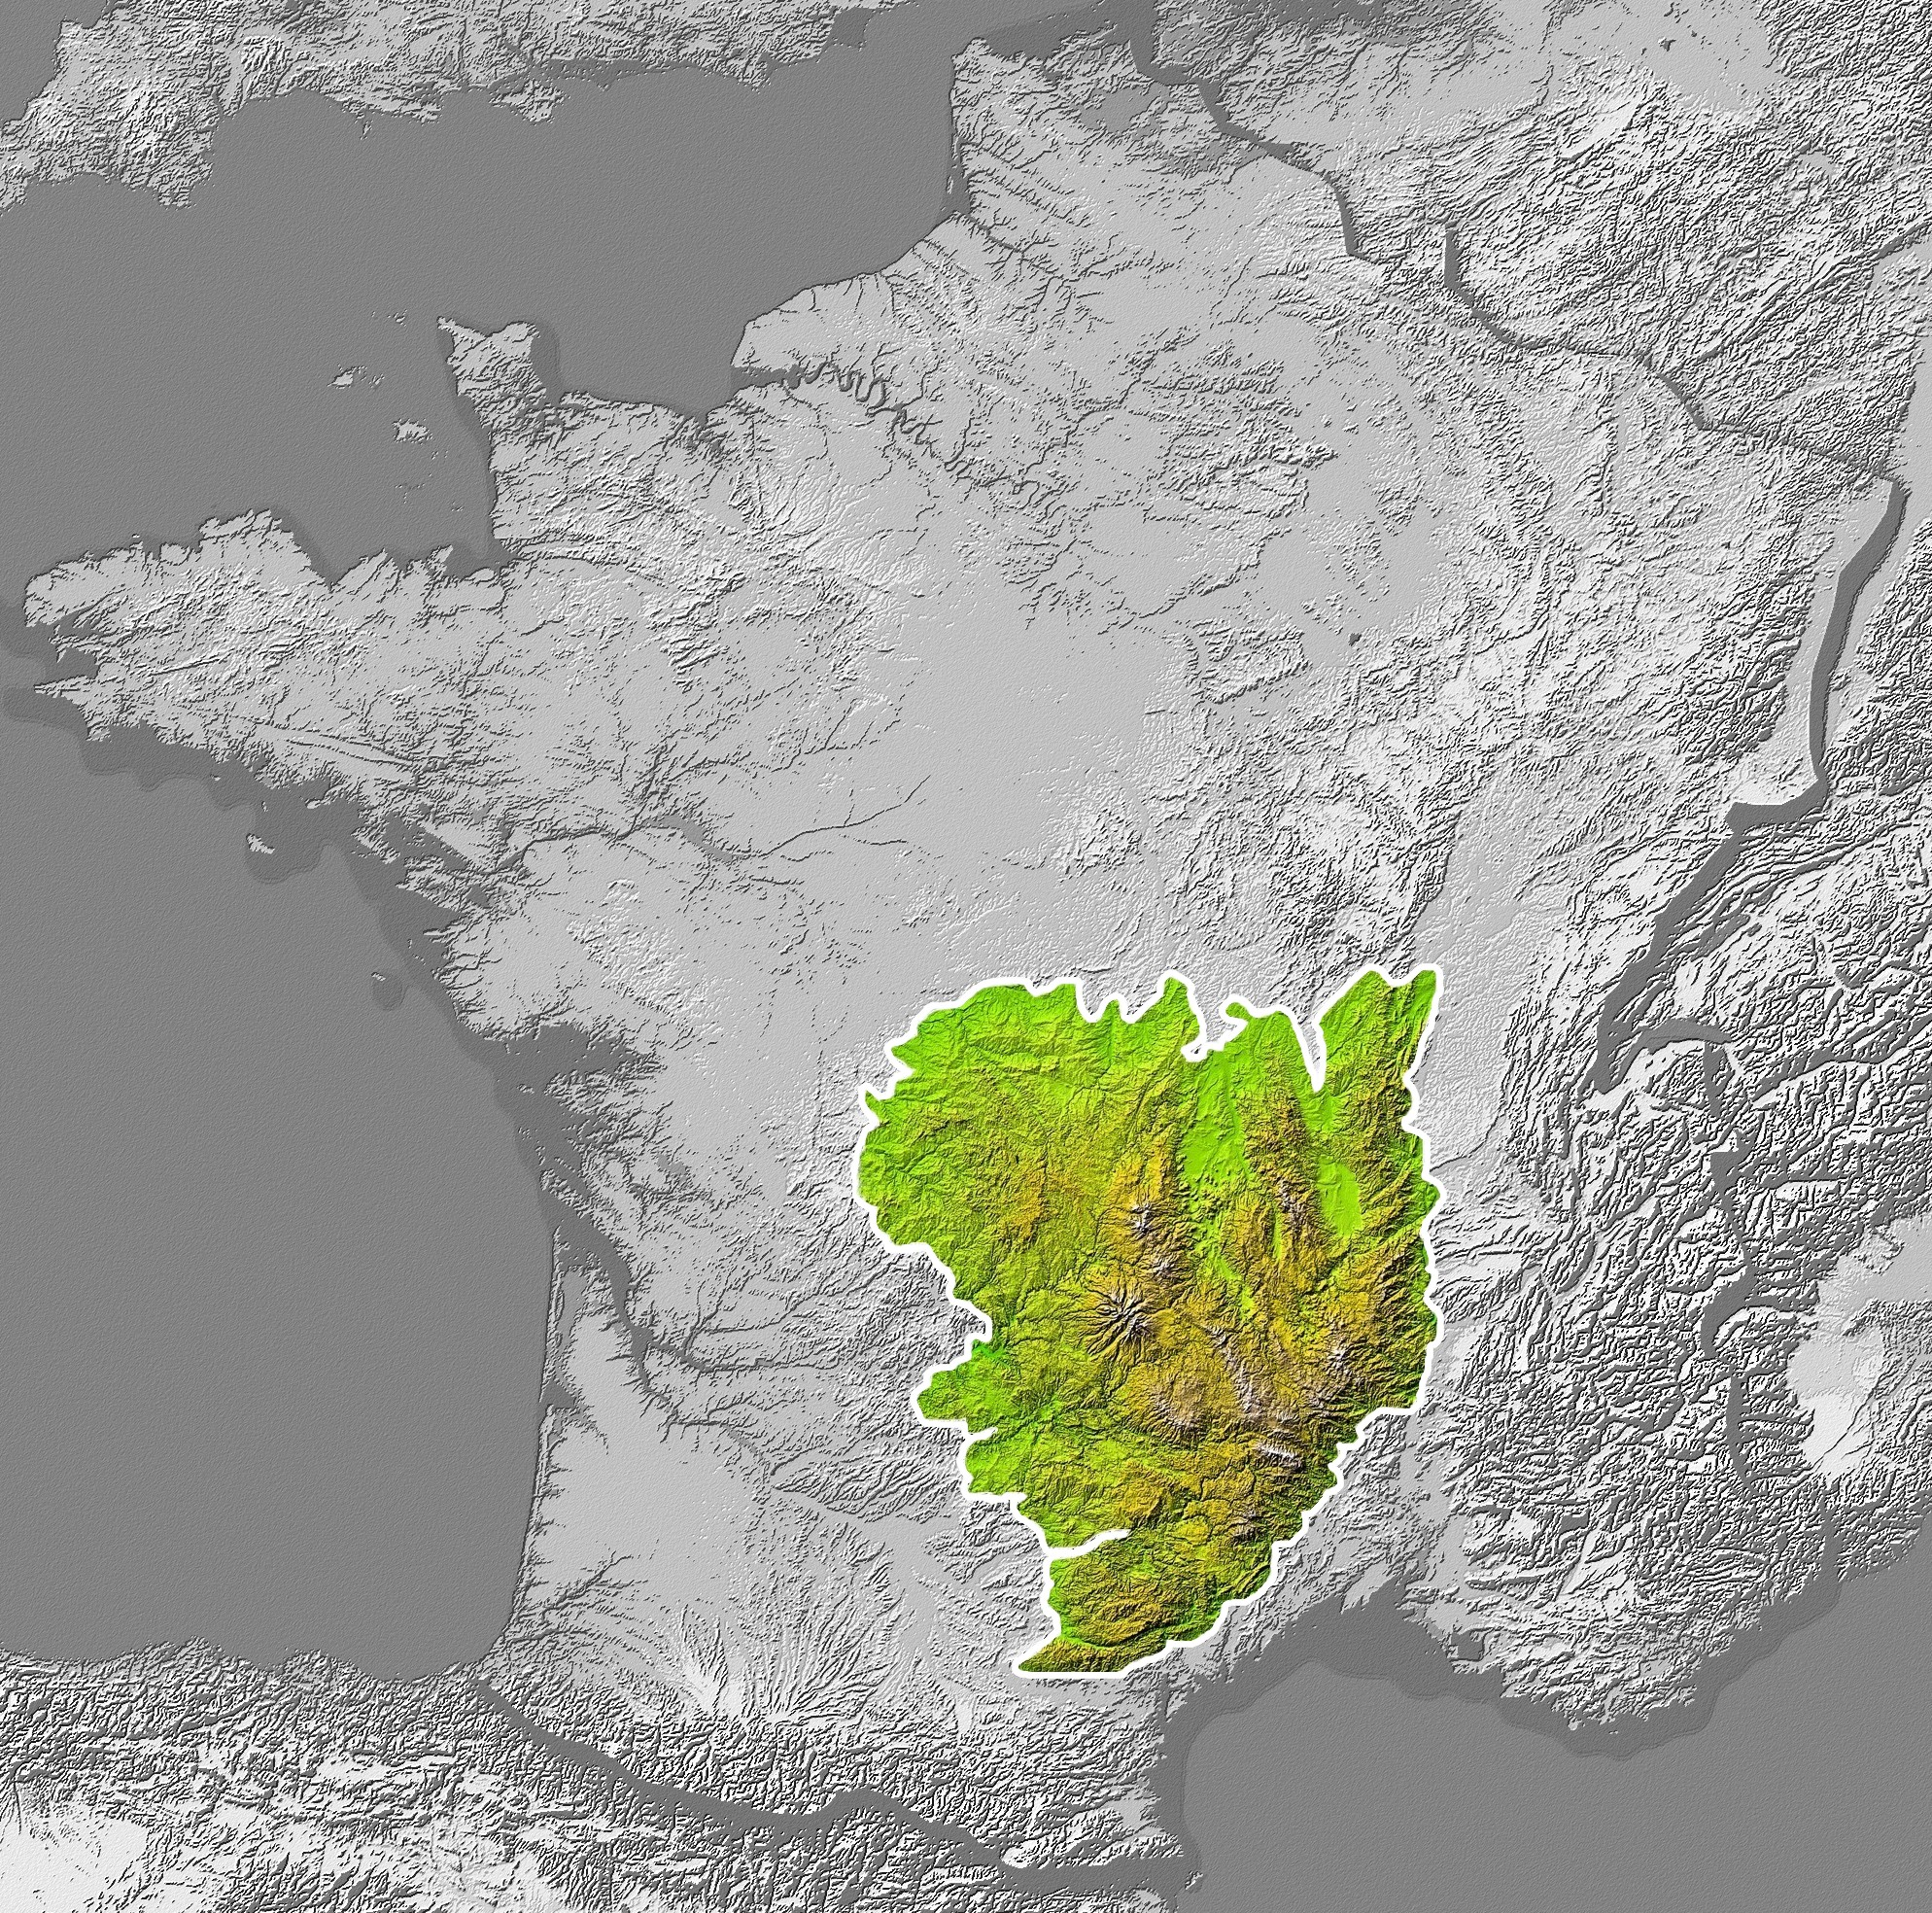 Image:France Massif central